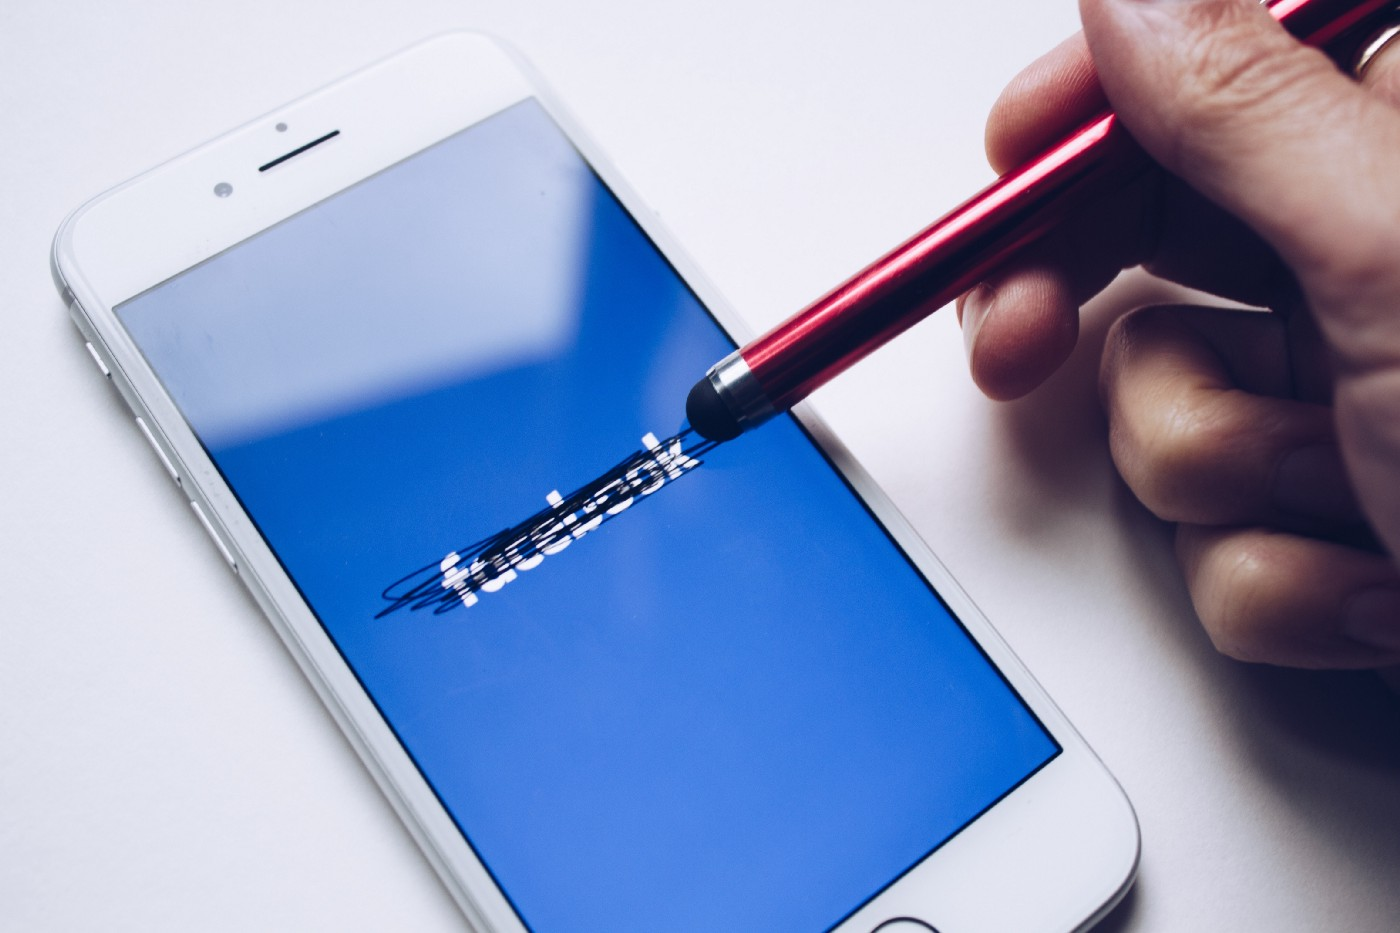 A hand scratching the Facebook logo on a smartphone using touch-sensitive pen